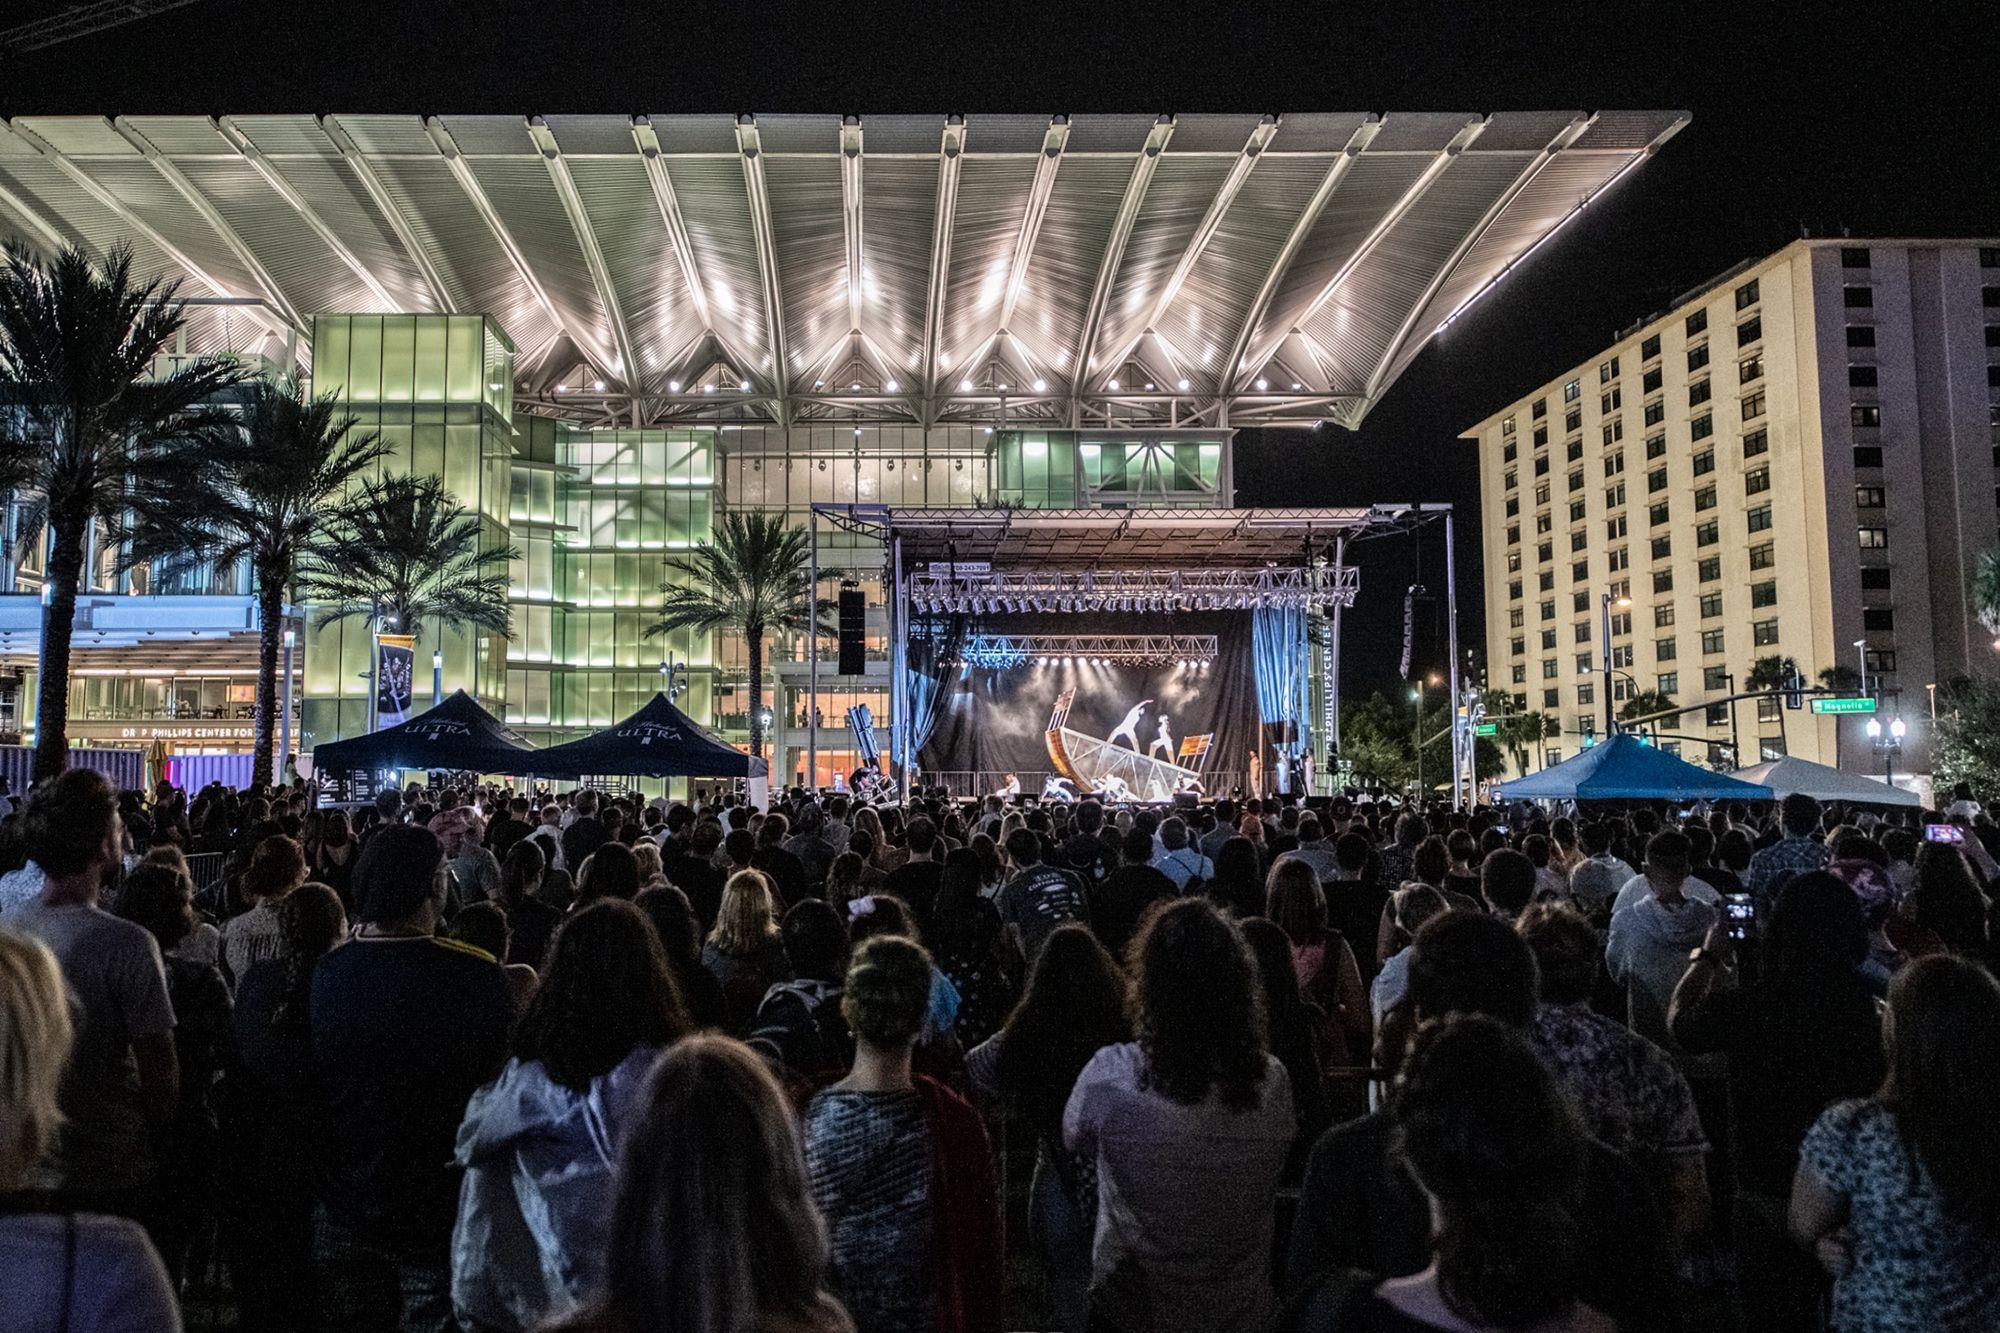 A large crowd watches a performance at the Dr. Phillips Center in downtown Orlando.